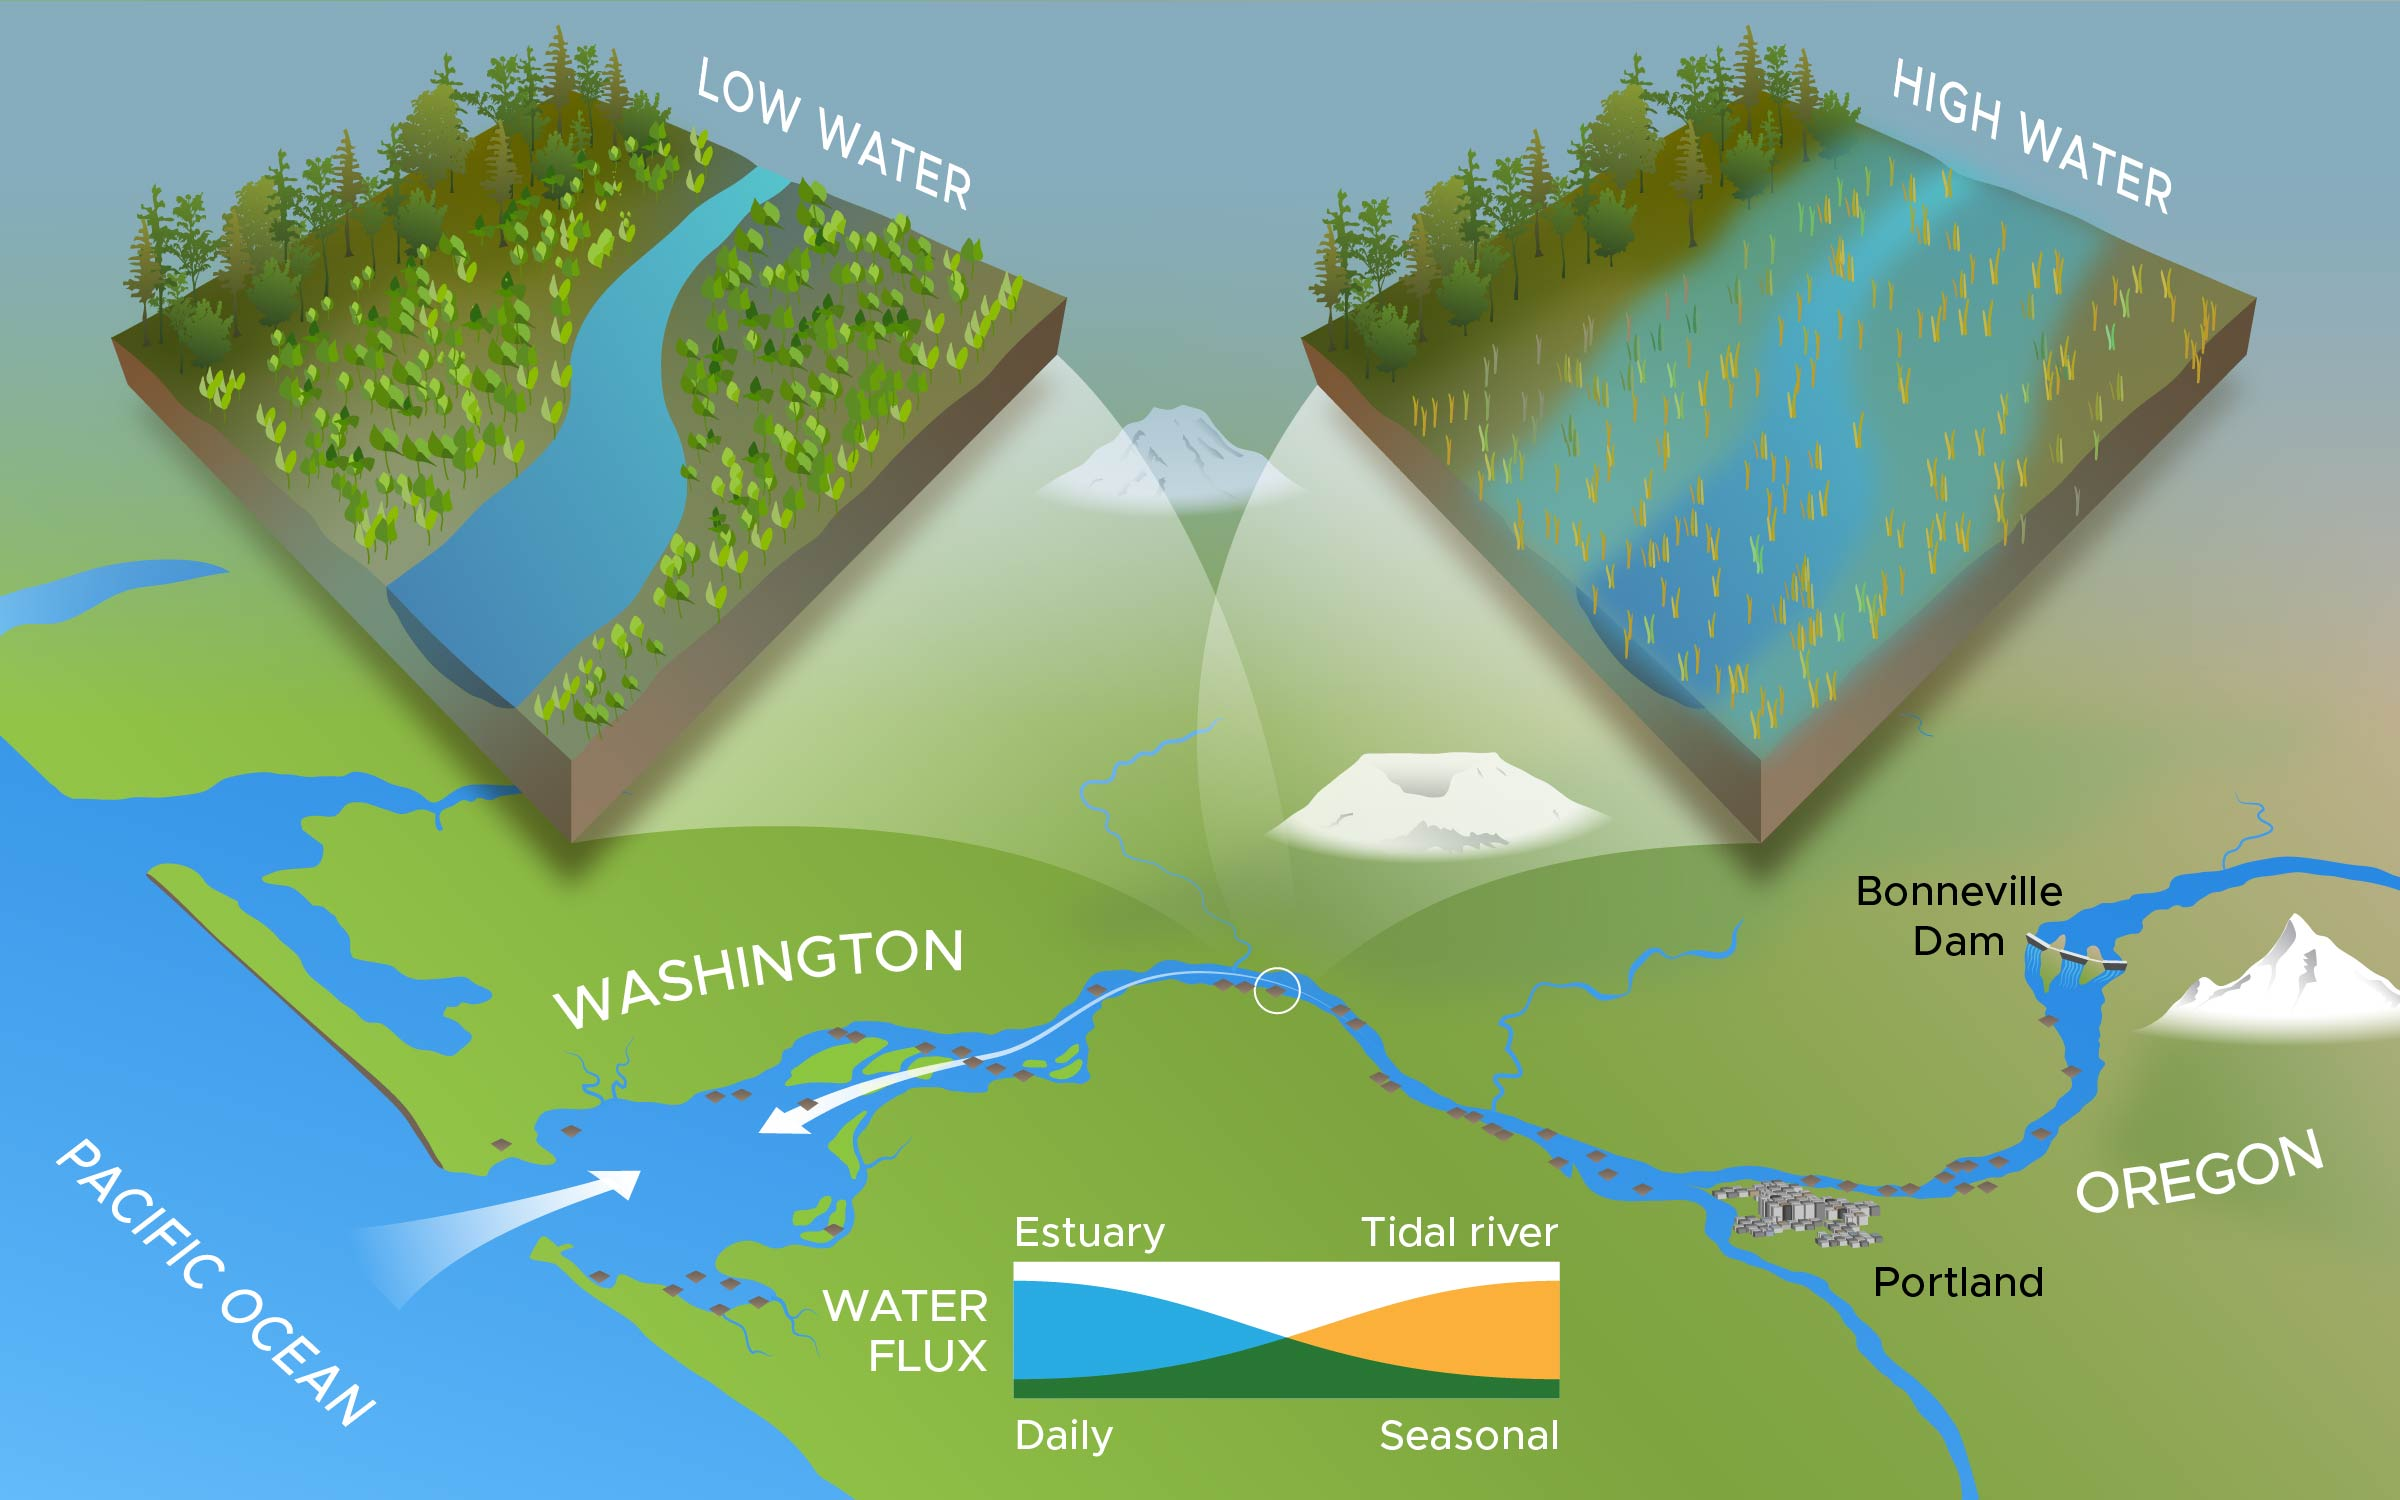 Illustration of Columbia River floodplain study area to examine how hydrology cycles affect estuary and tidal ecosystems.